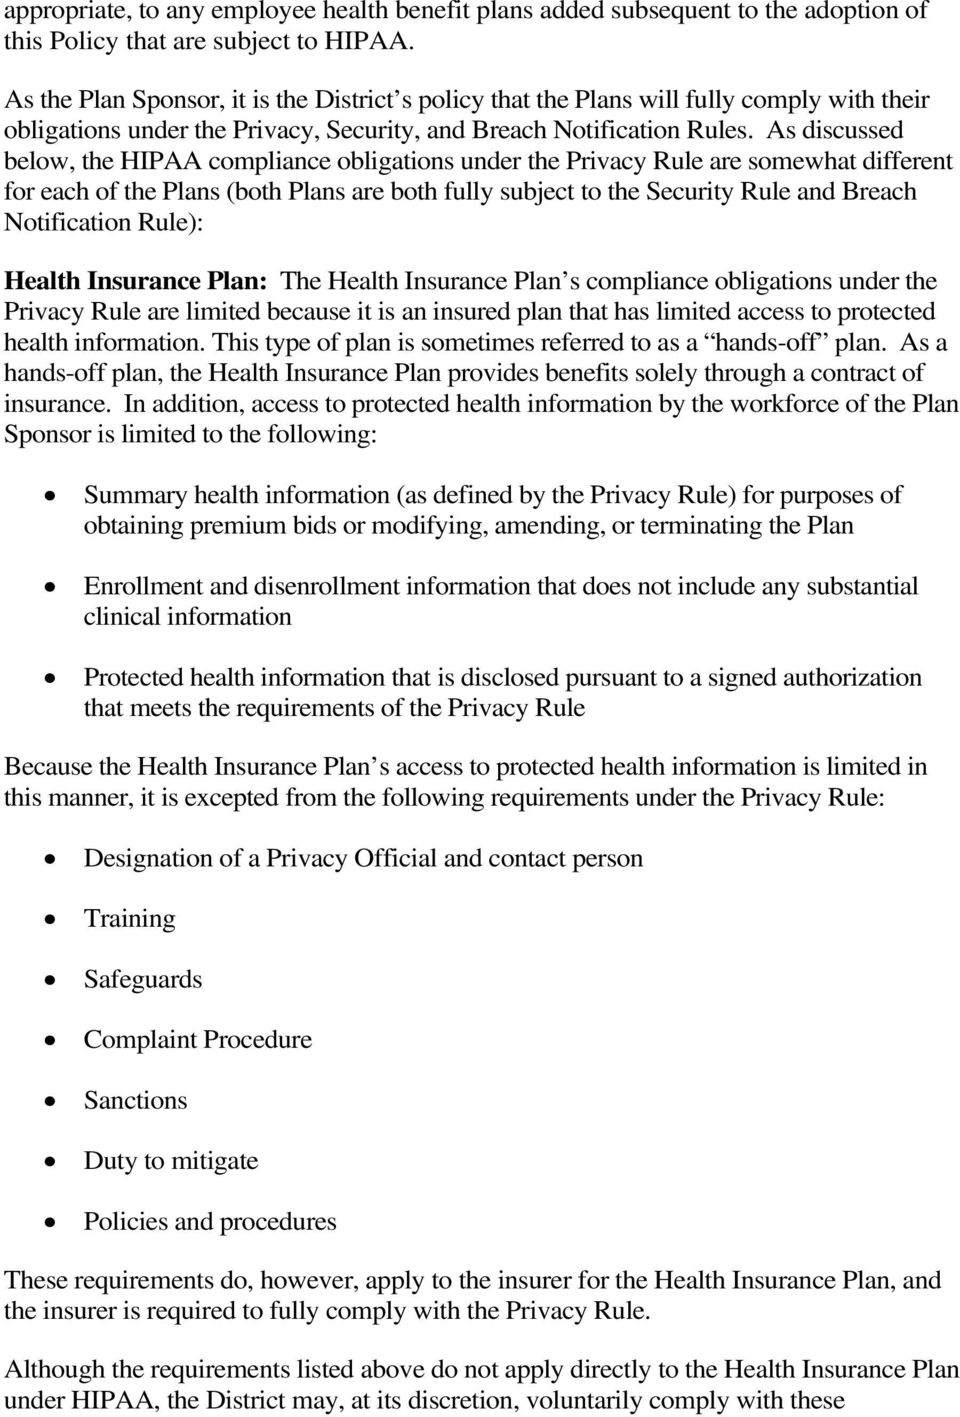 As discussed below, the HIPAA compliance obligations under the Privacy Rule are somewhat different for each of the Plans (both Plans are both fully subject to the Security Rule and Breach